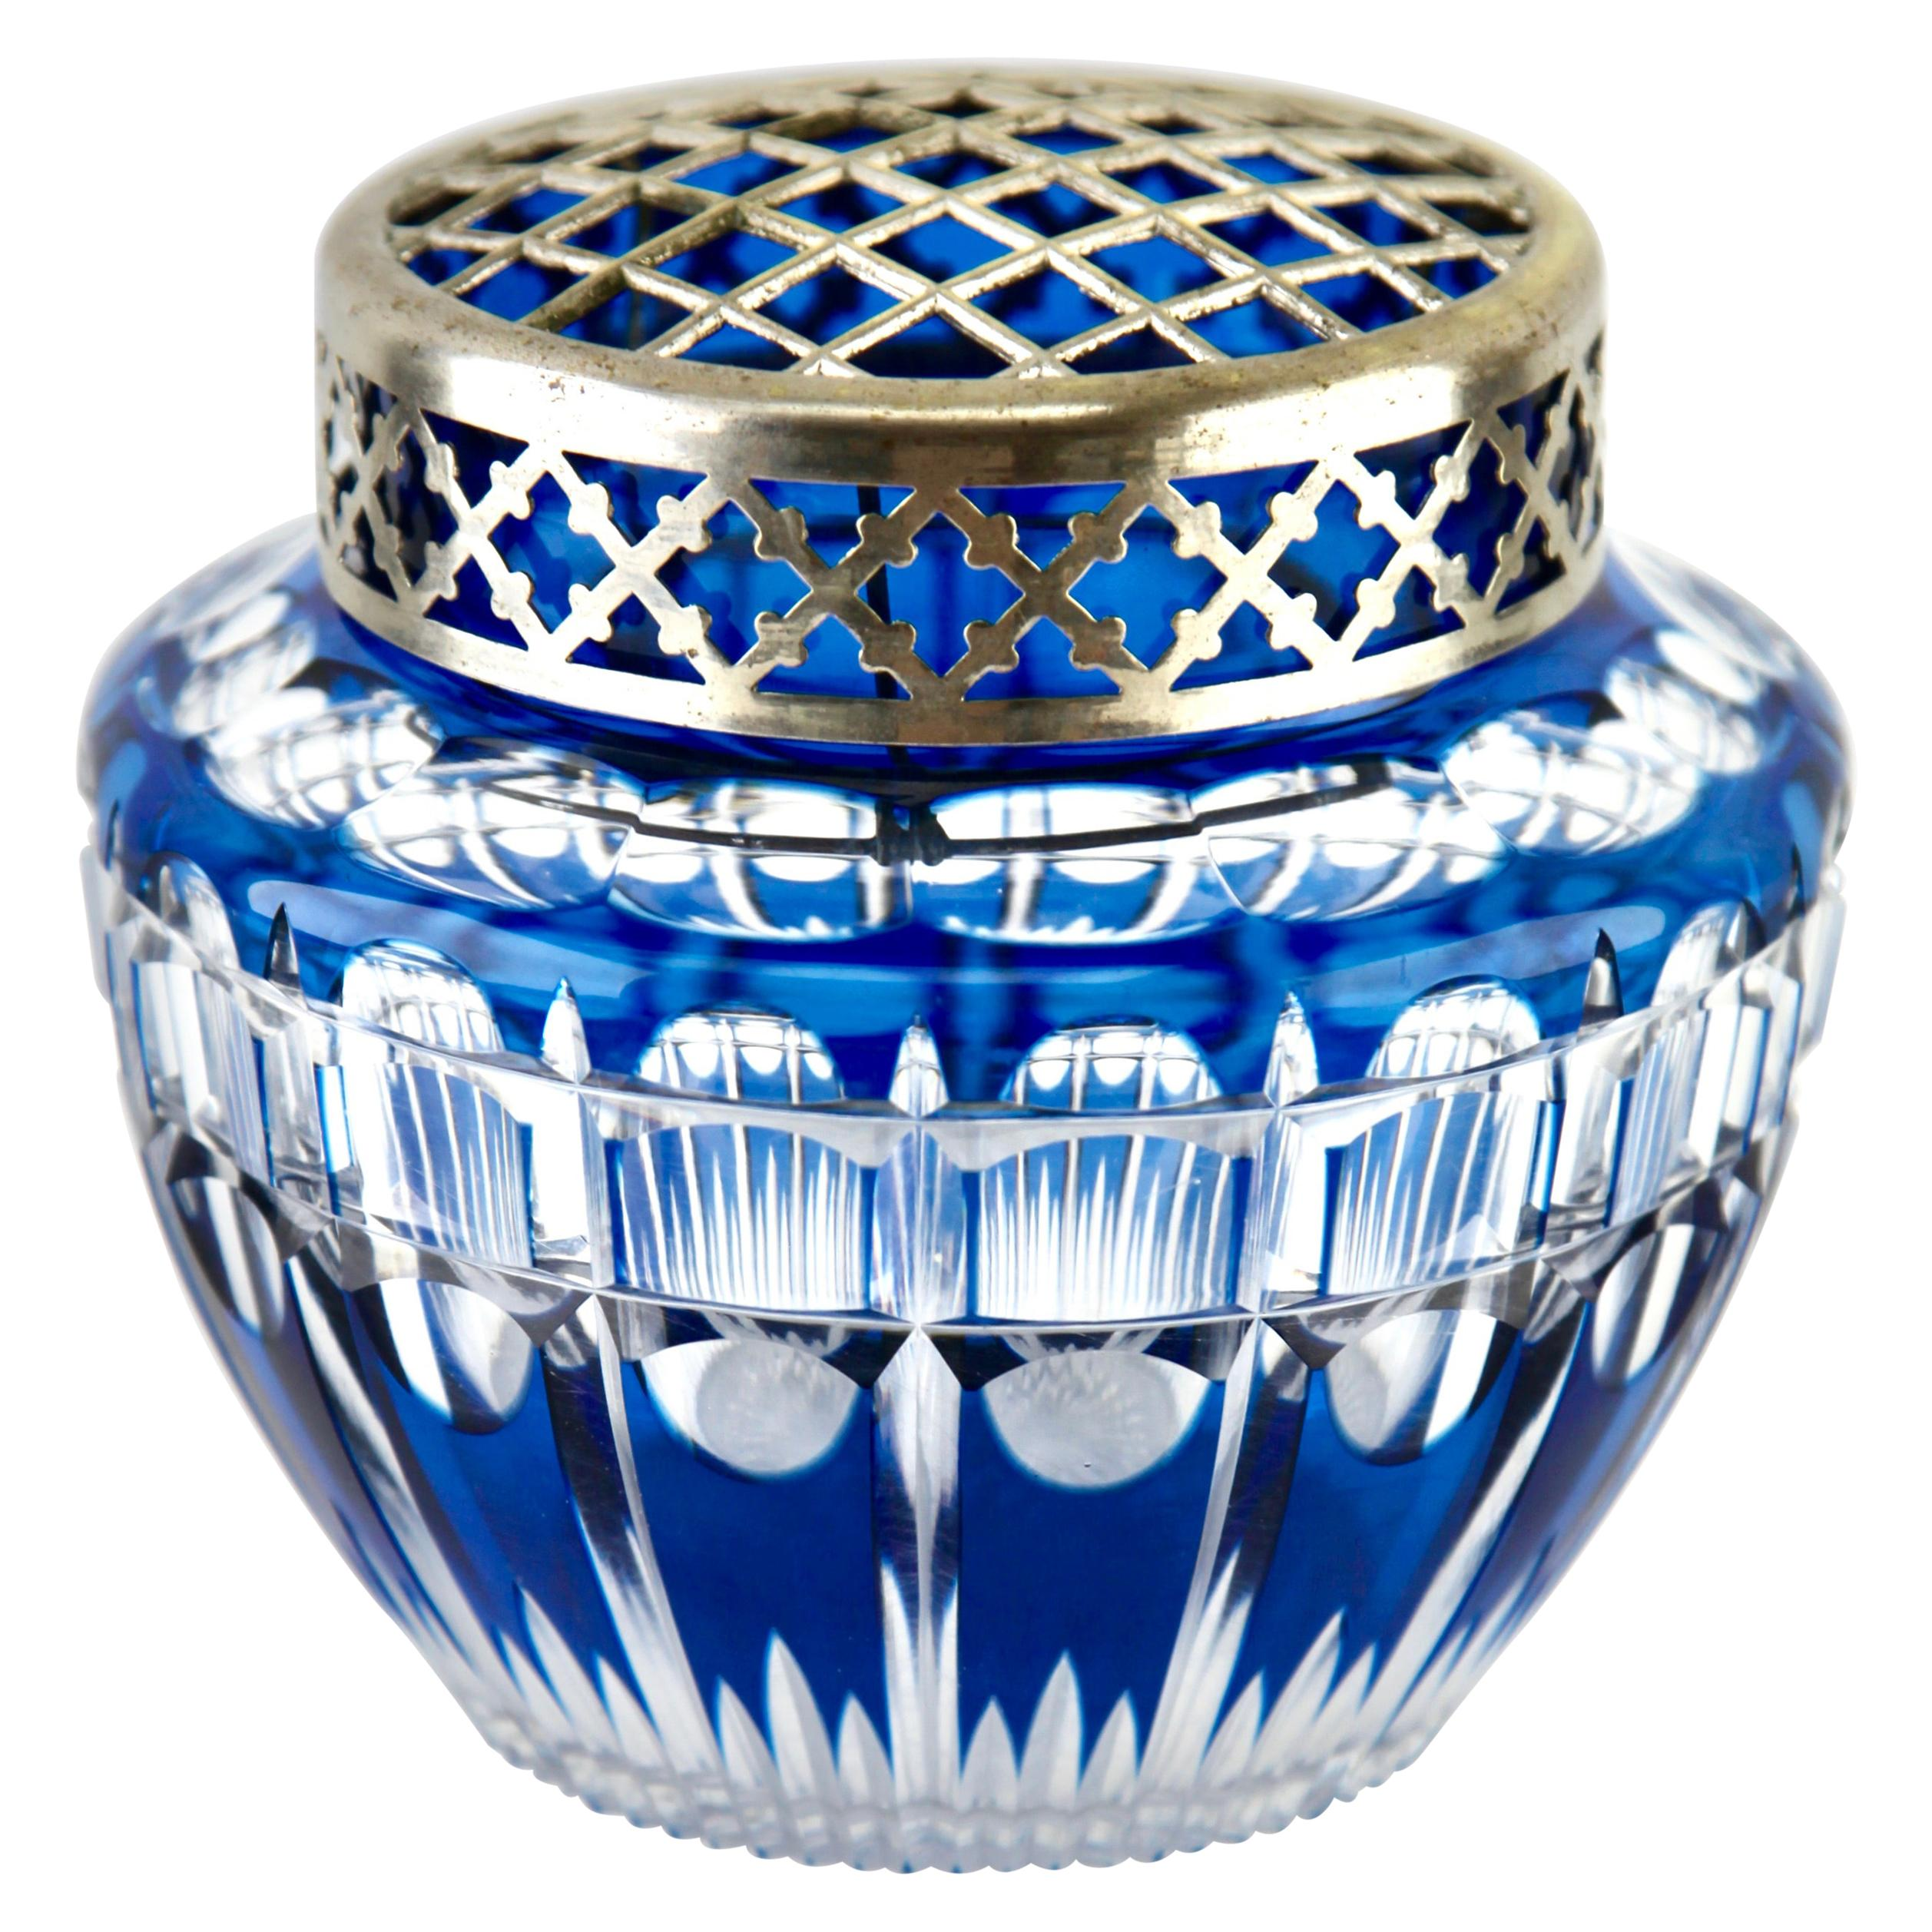 Val Saint Lambert 'Pique Fleurs' Vase, Crystal Cut-to-Clear, with Grille